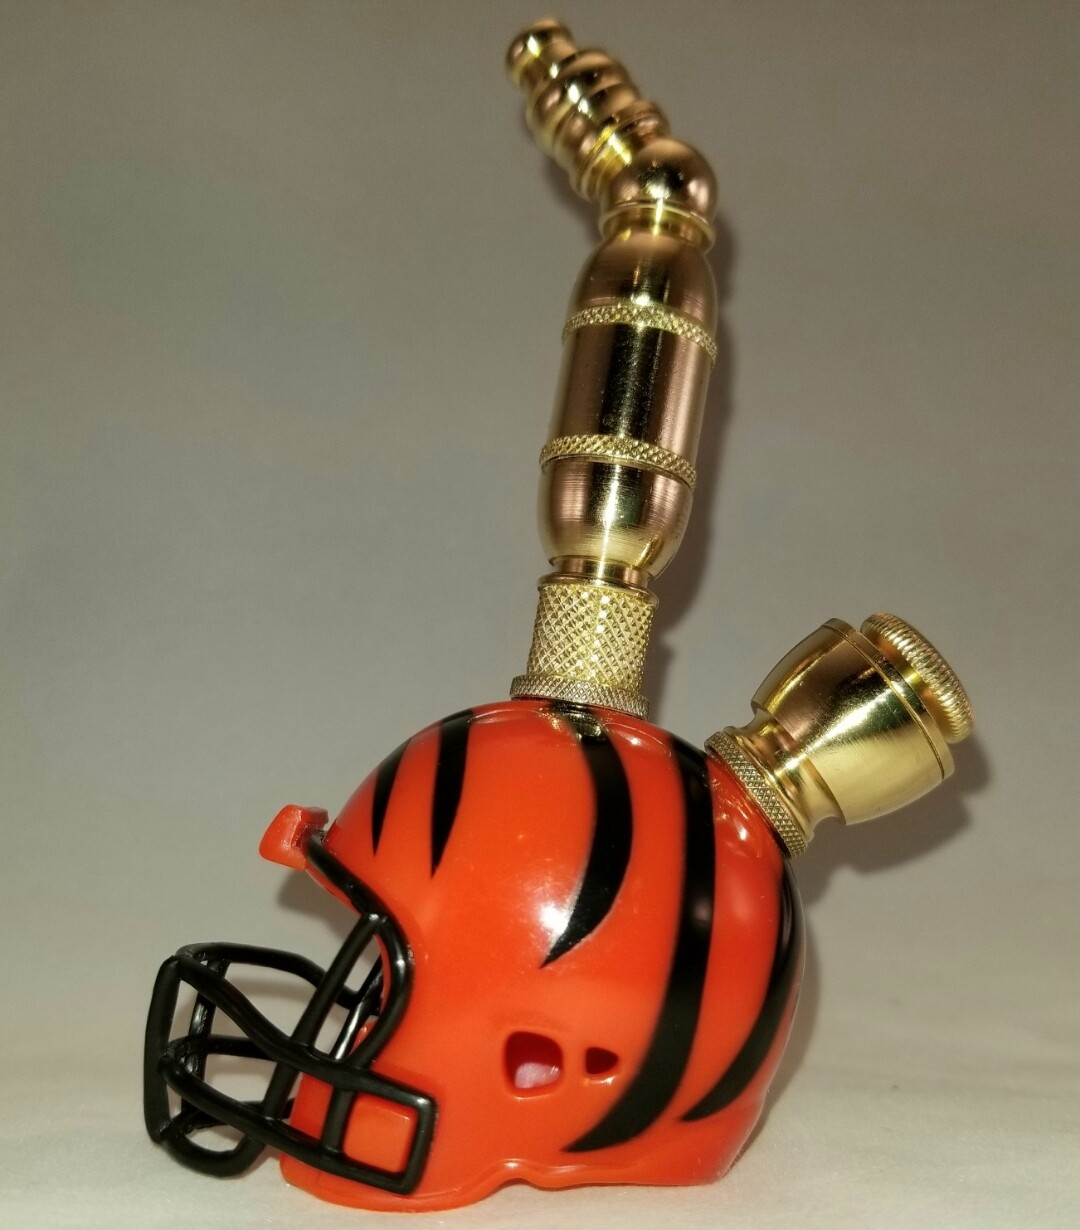 CINCINNATI BENGALS NFL FOOTBALL HELMET SMOKING PIPE Upright/Brass